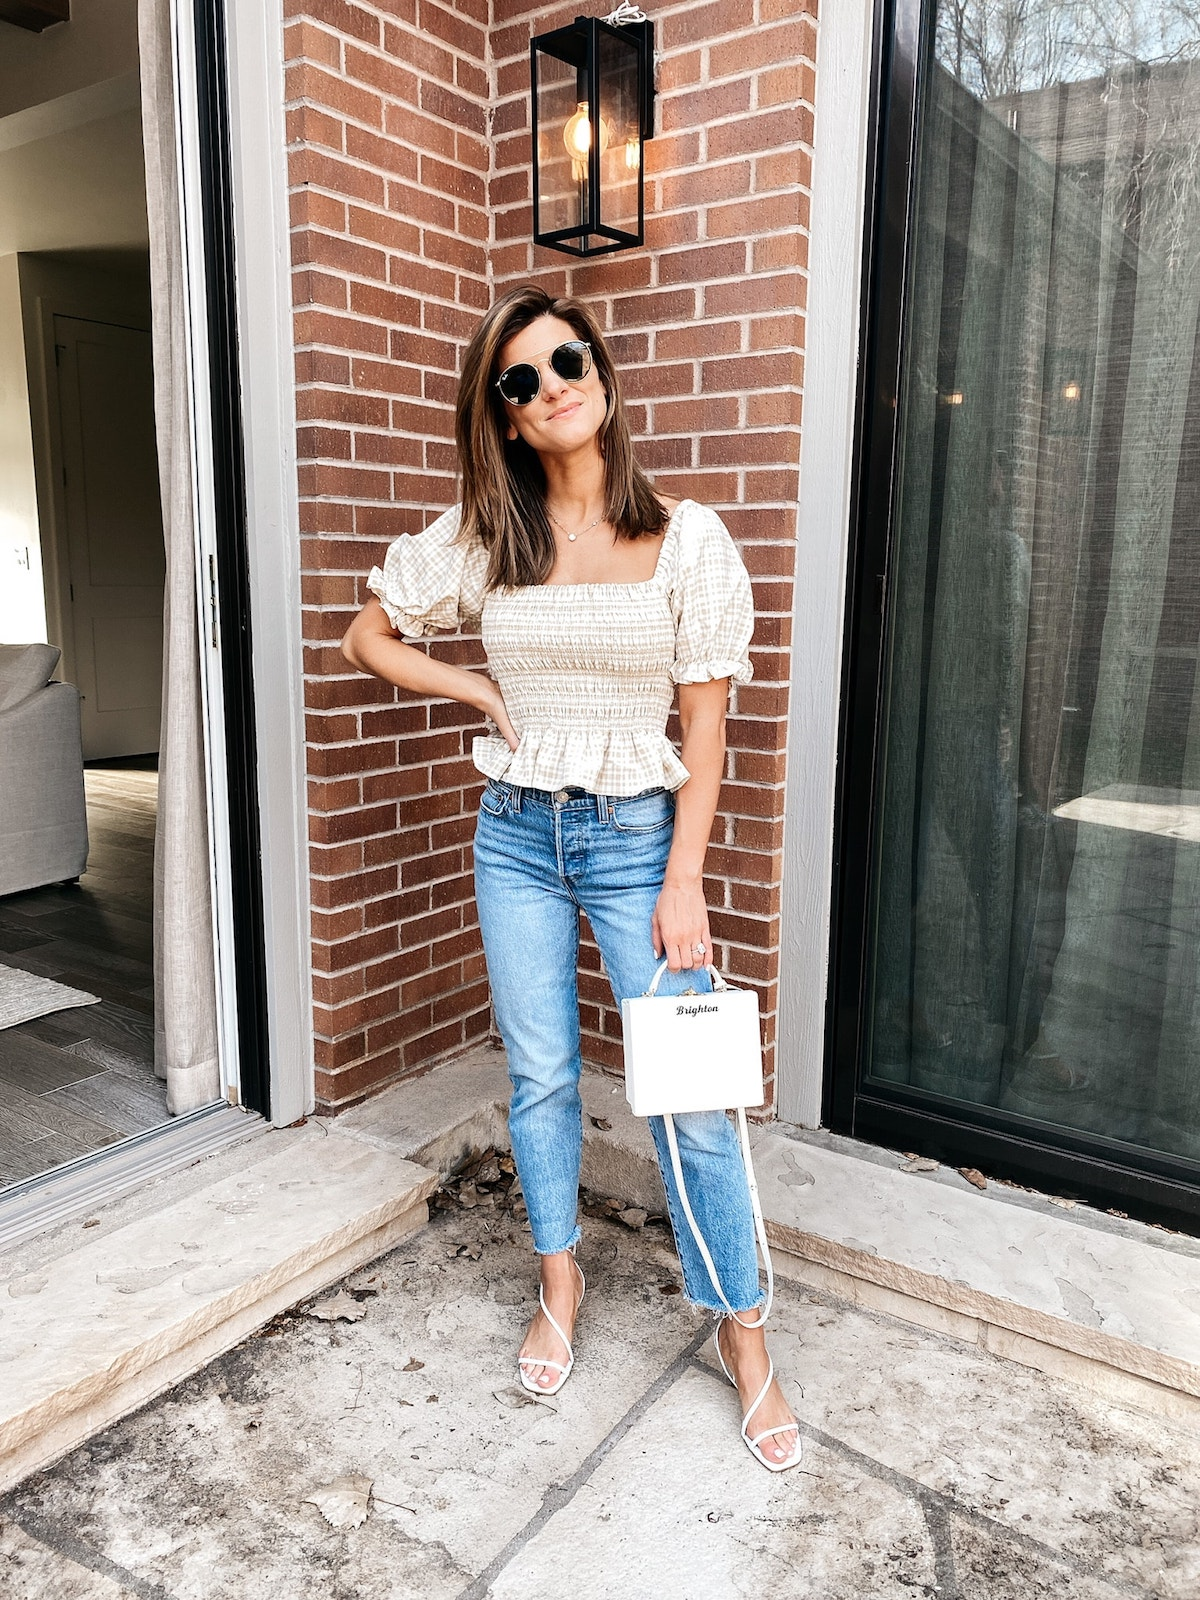 Brighton Keller wearing smocked tan top, Levi jeans, scrappy sandals and white purse